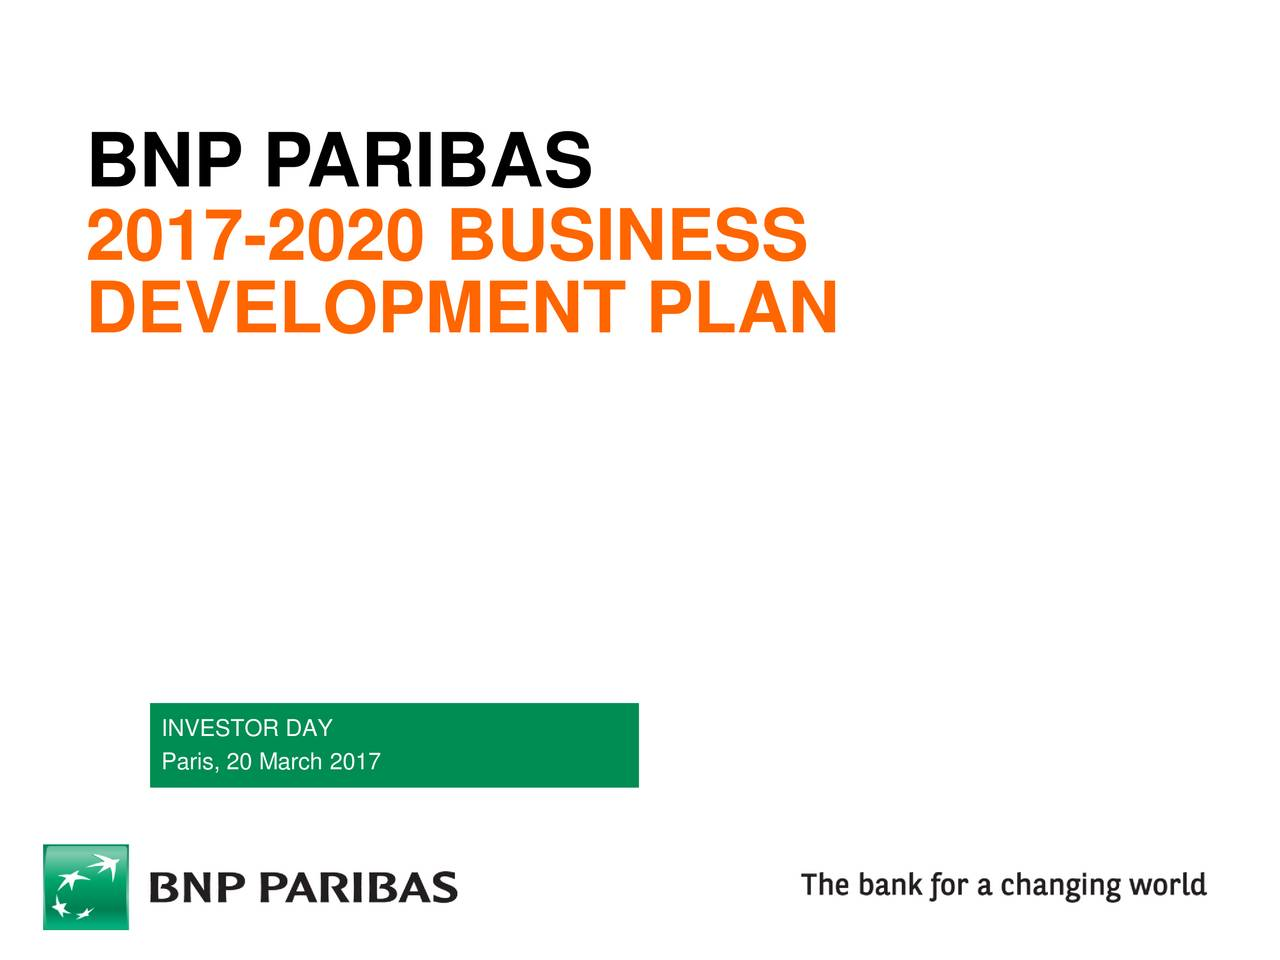 bnp paribas (bnpqy) investor presentation - slideshow - bnp, Powerpoint templates